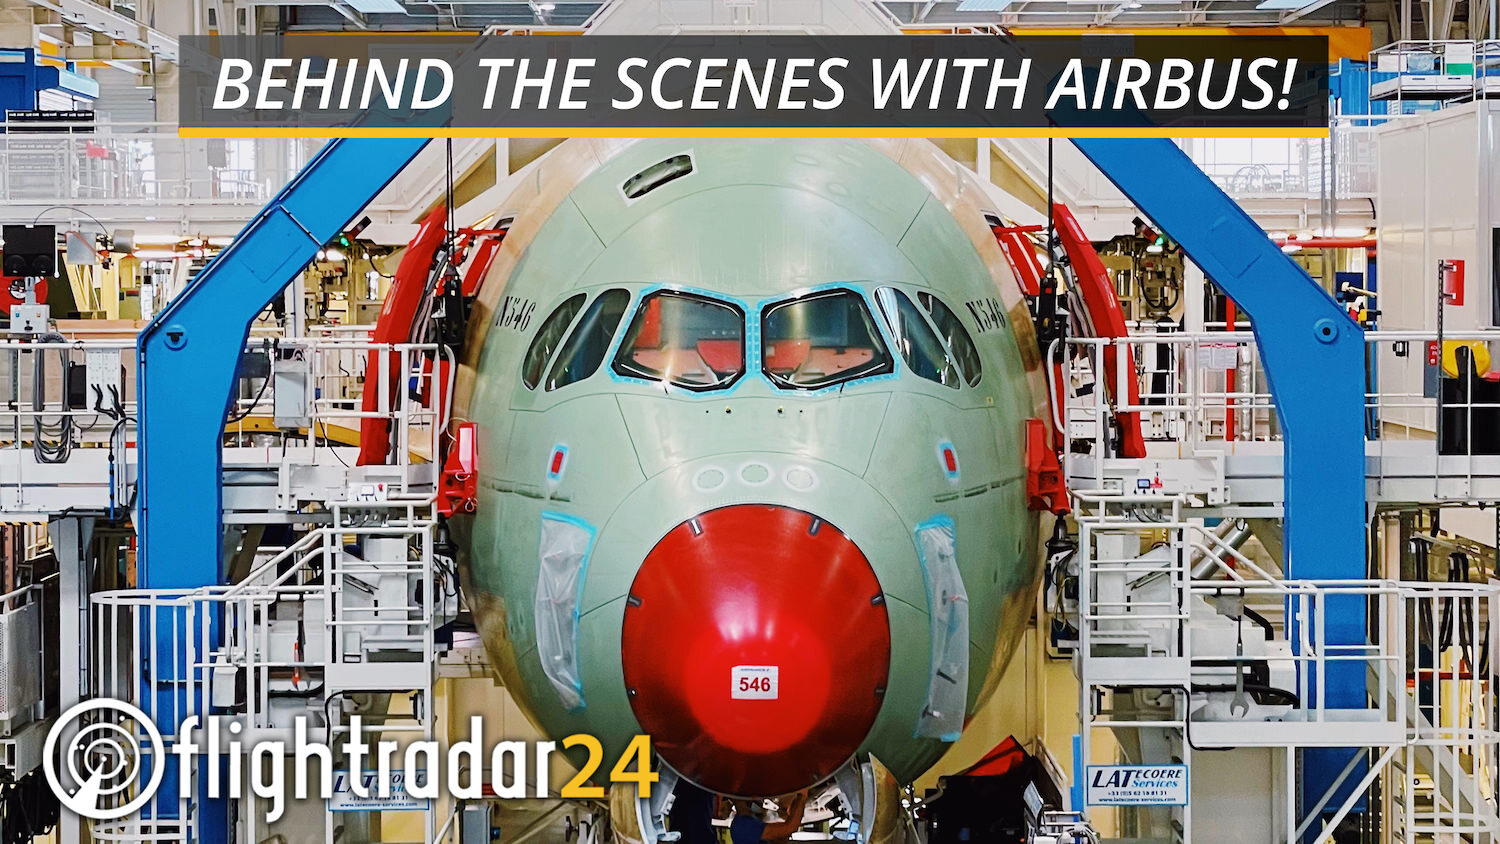 Title card: Behind the scenes with Airbus!